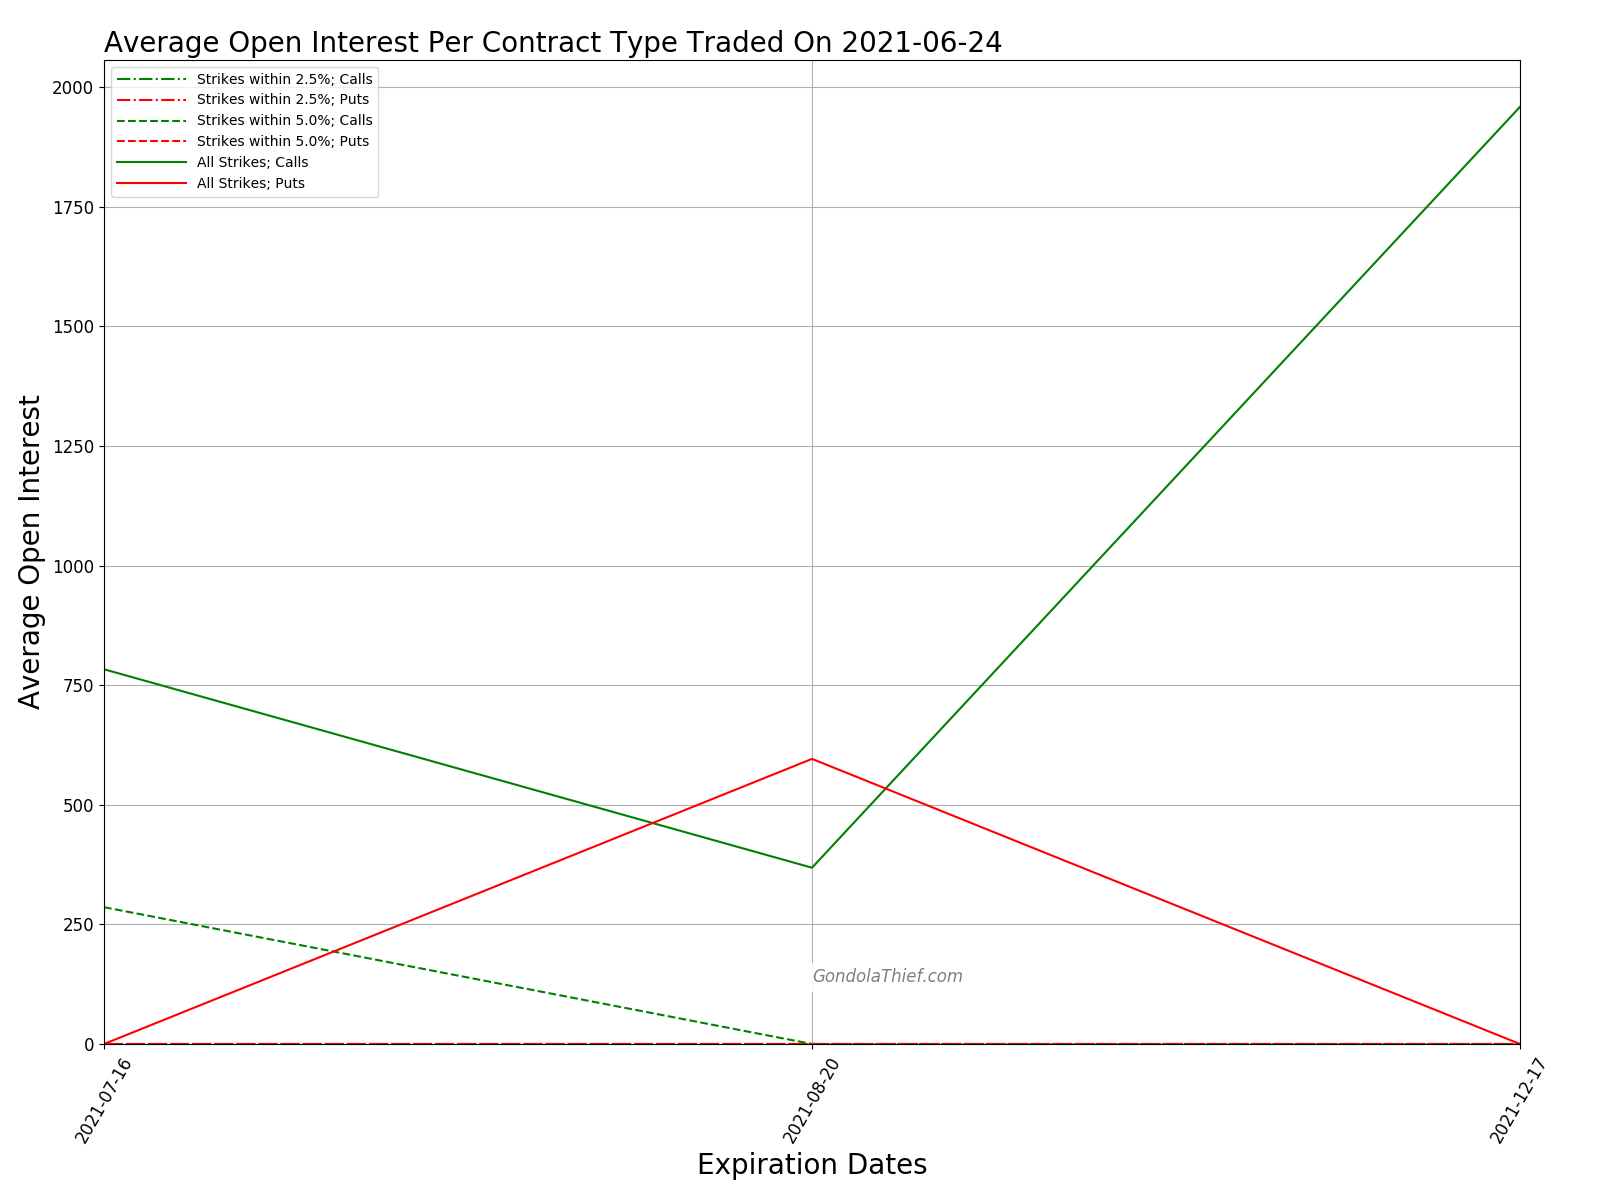 Graph of Average Open Interest Per Contract Type